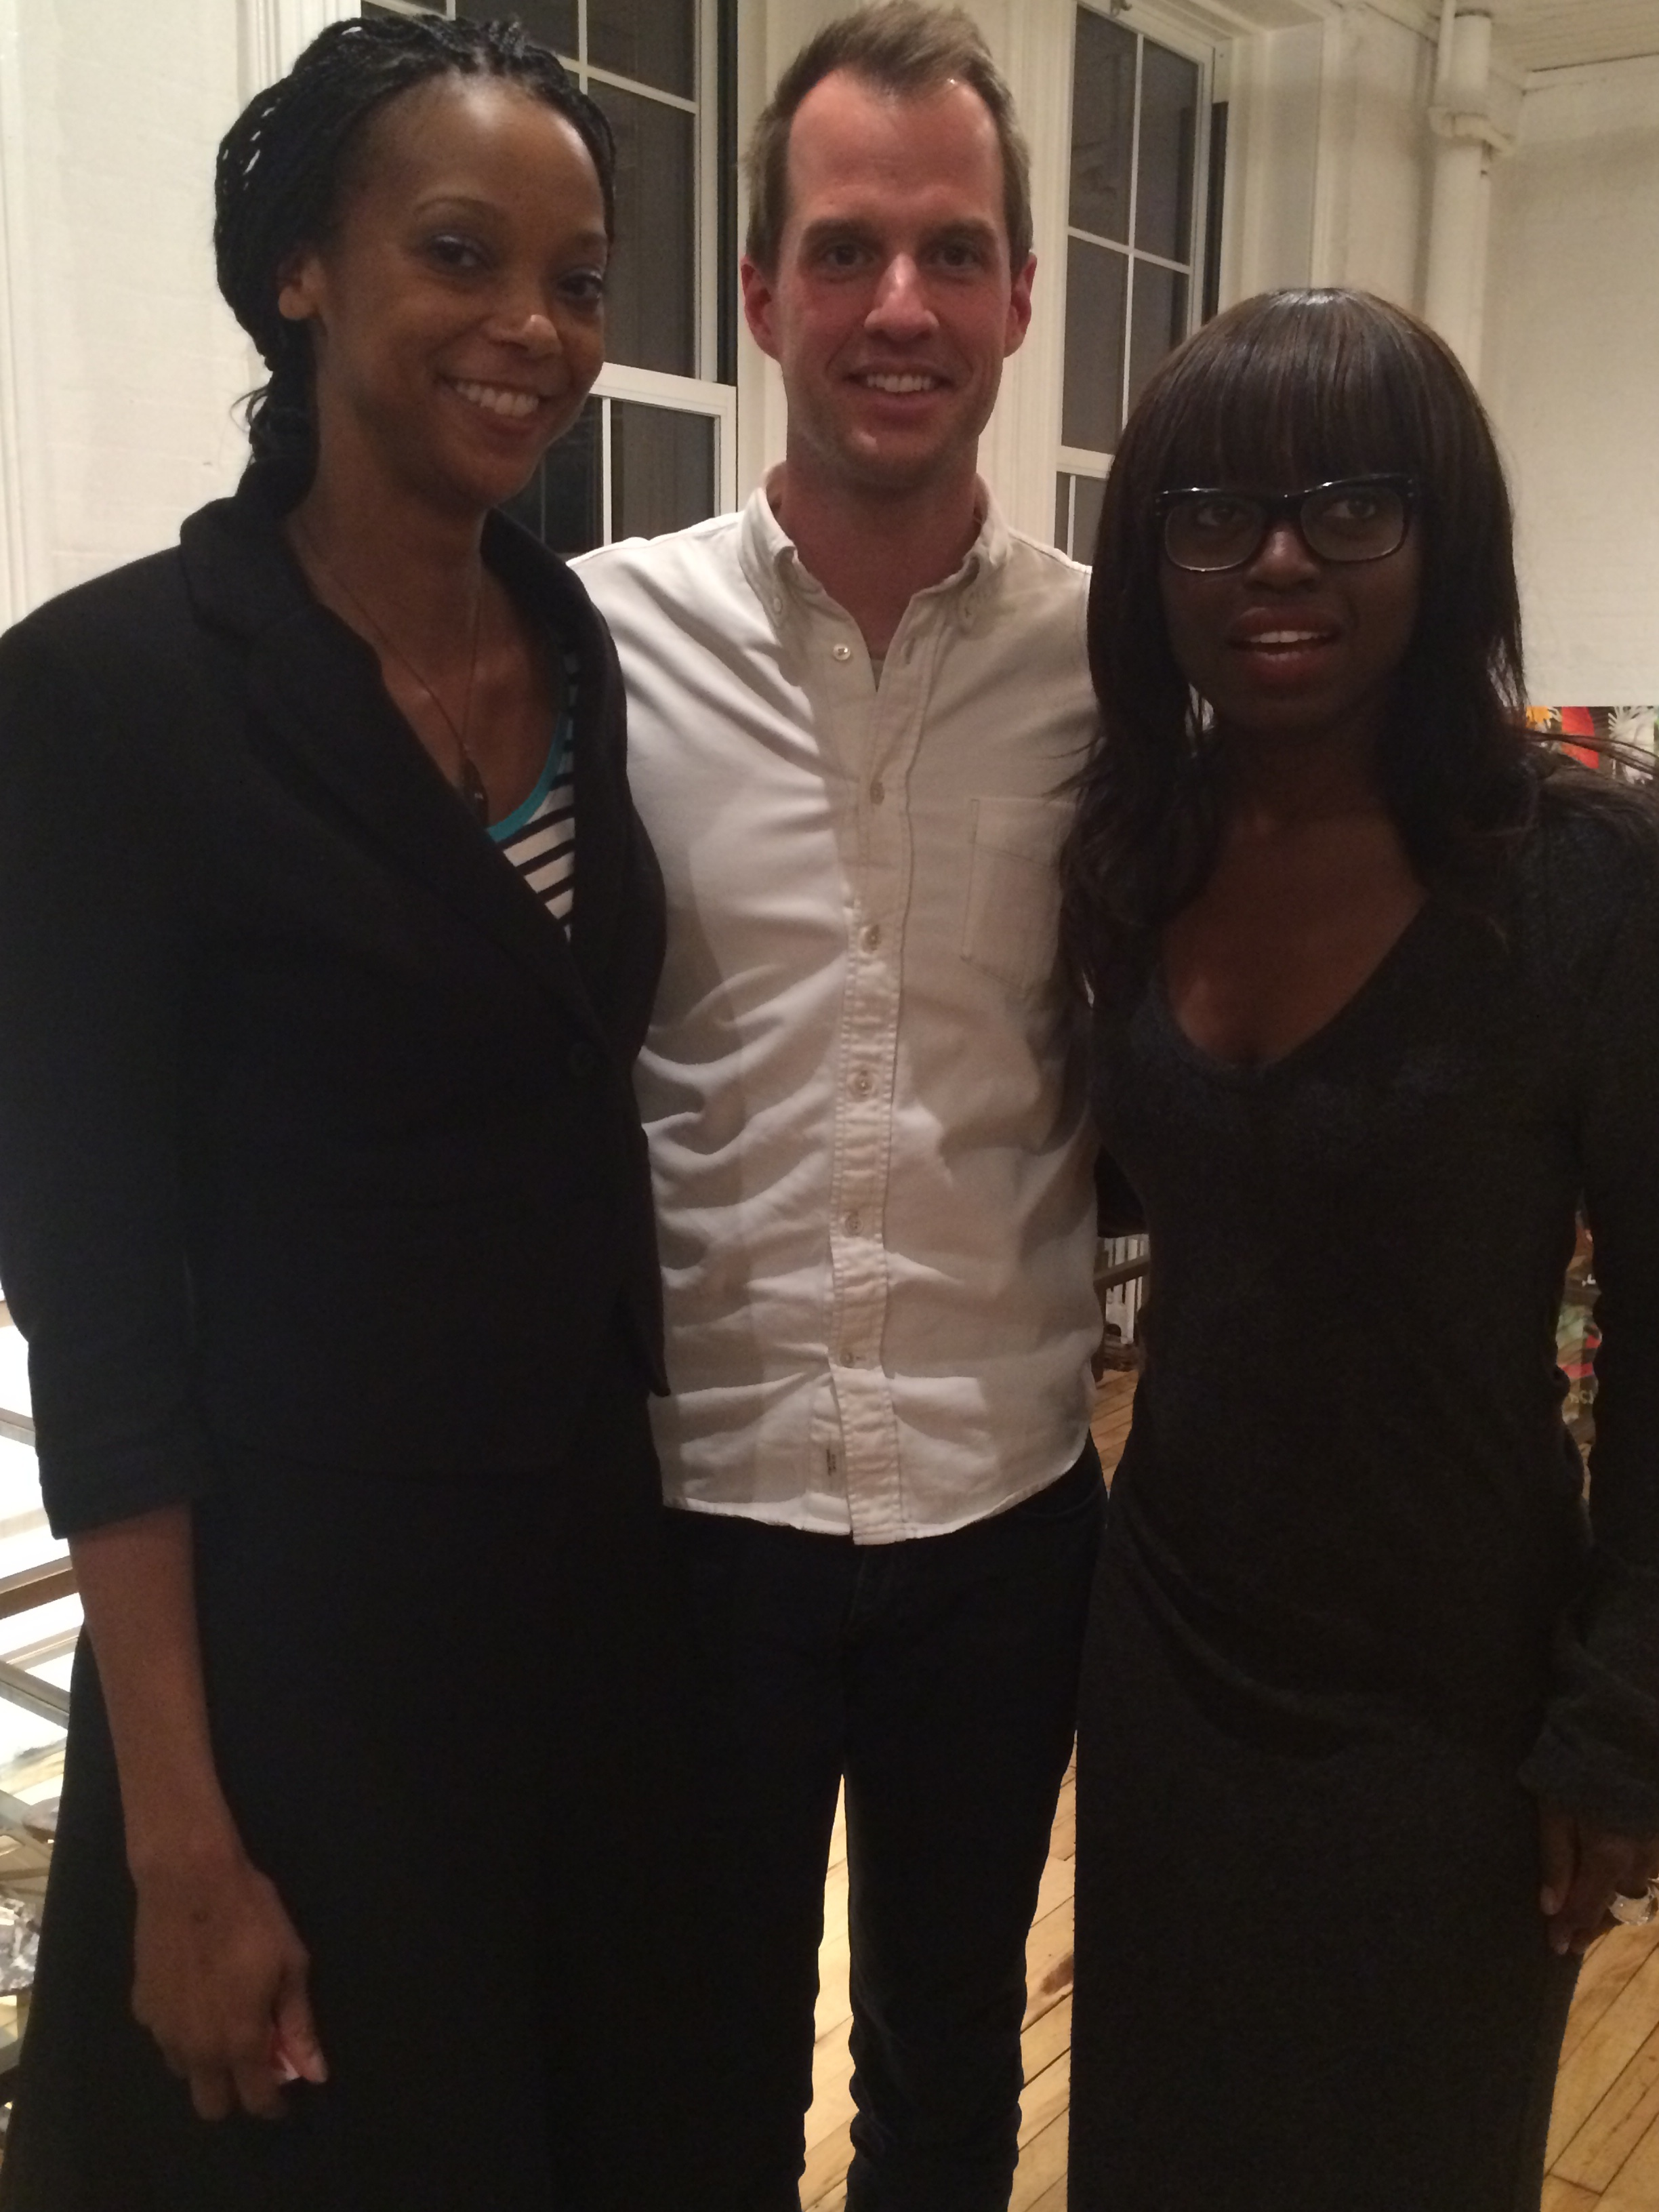 With Philippe Von Borries of  refinery29  and Dee Poku-Spaulding of  WIE Network .